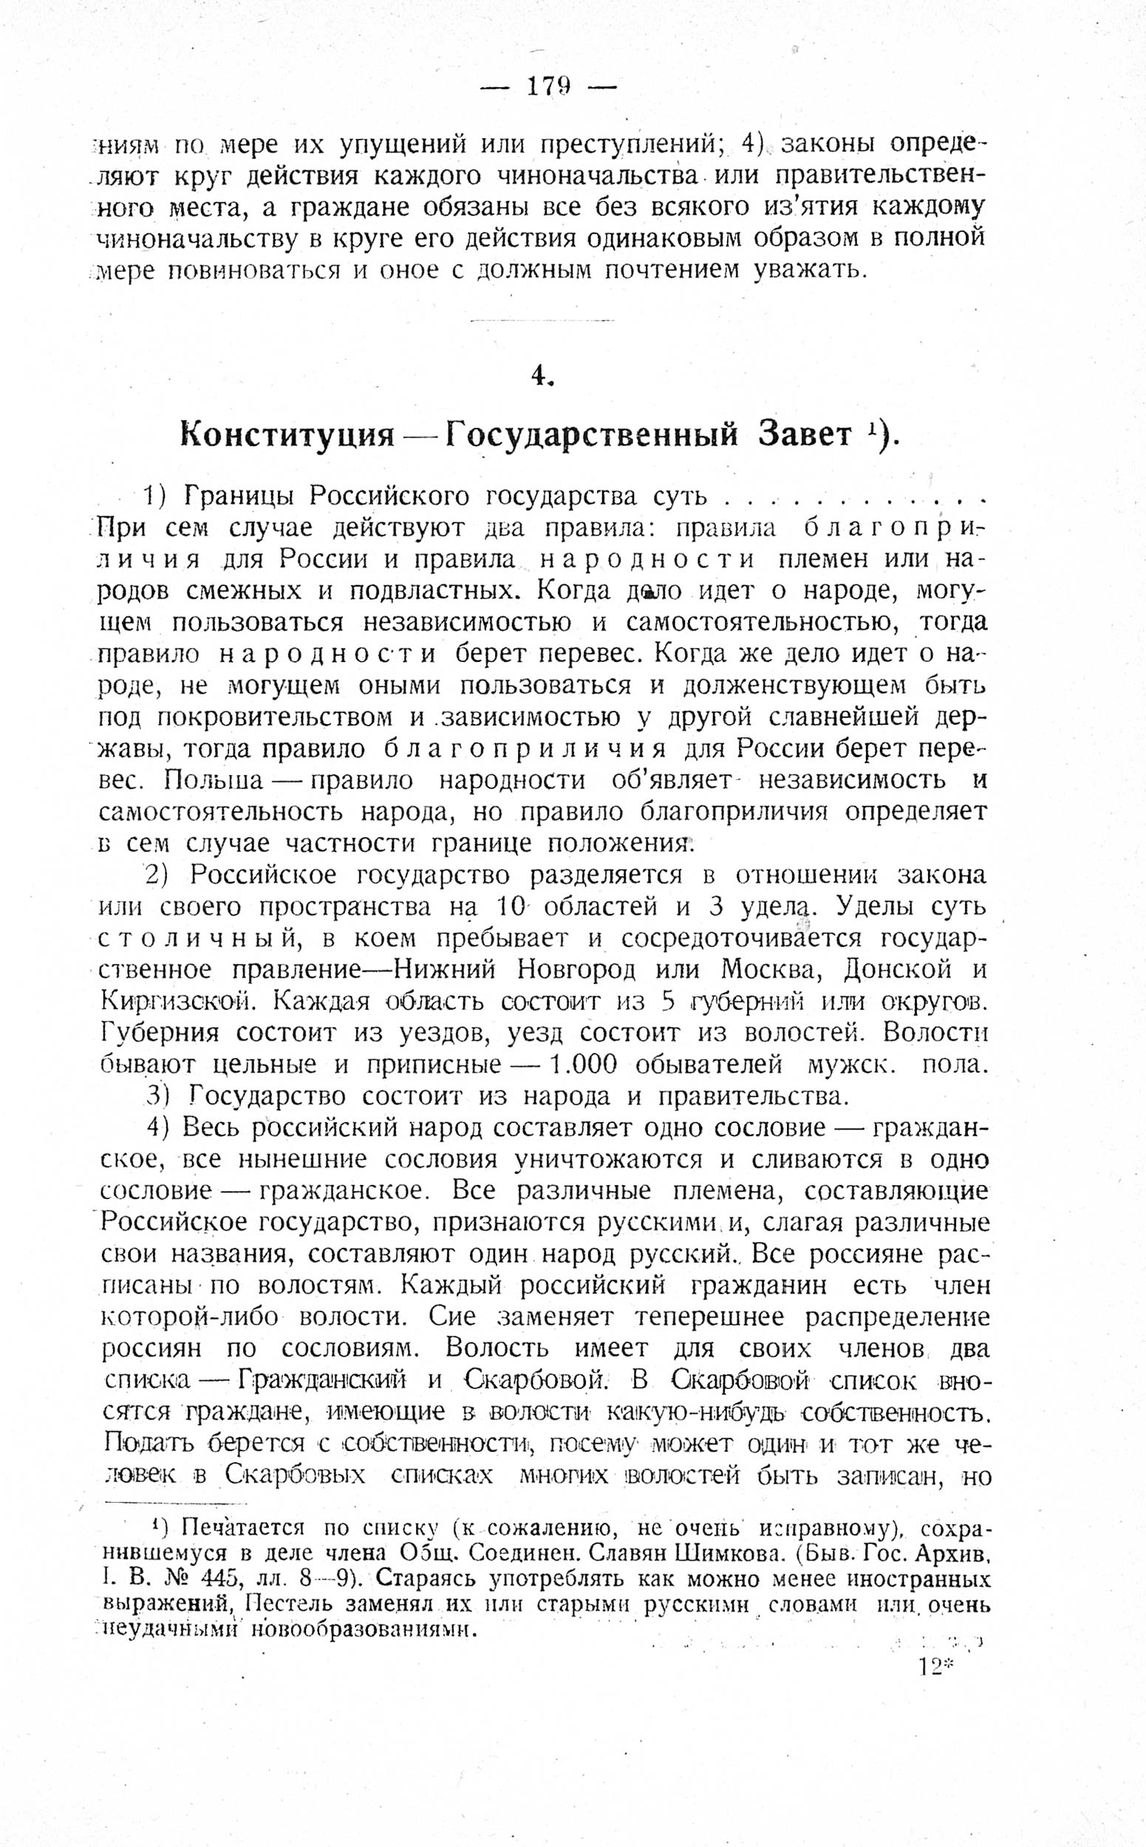 http://elib.shpl.ru/pages/625762/zooms/7